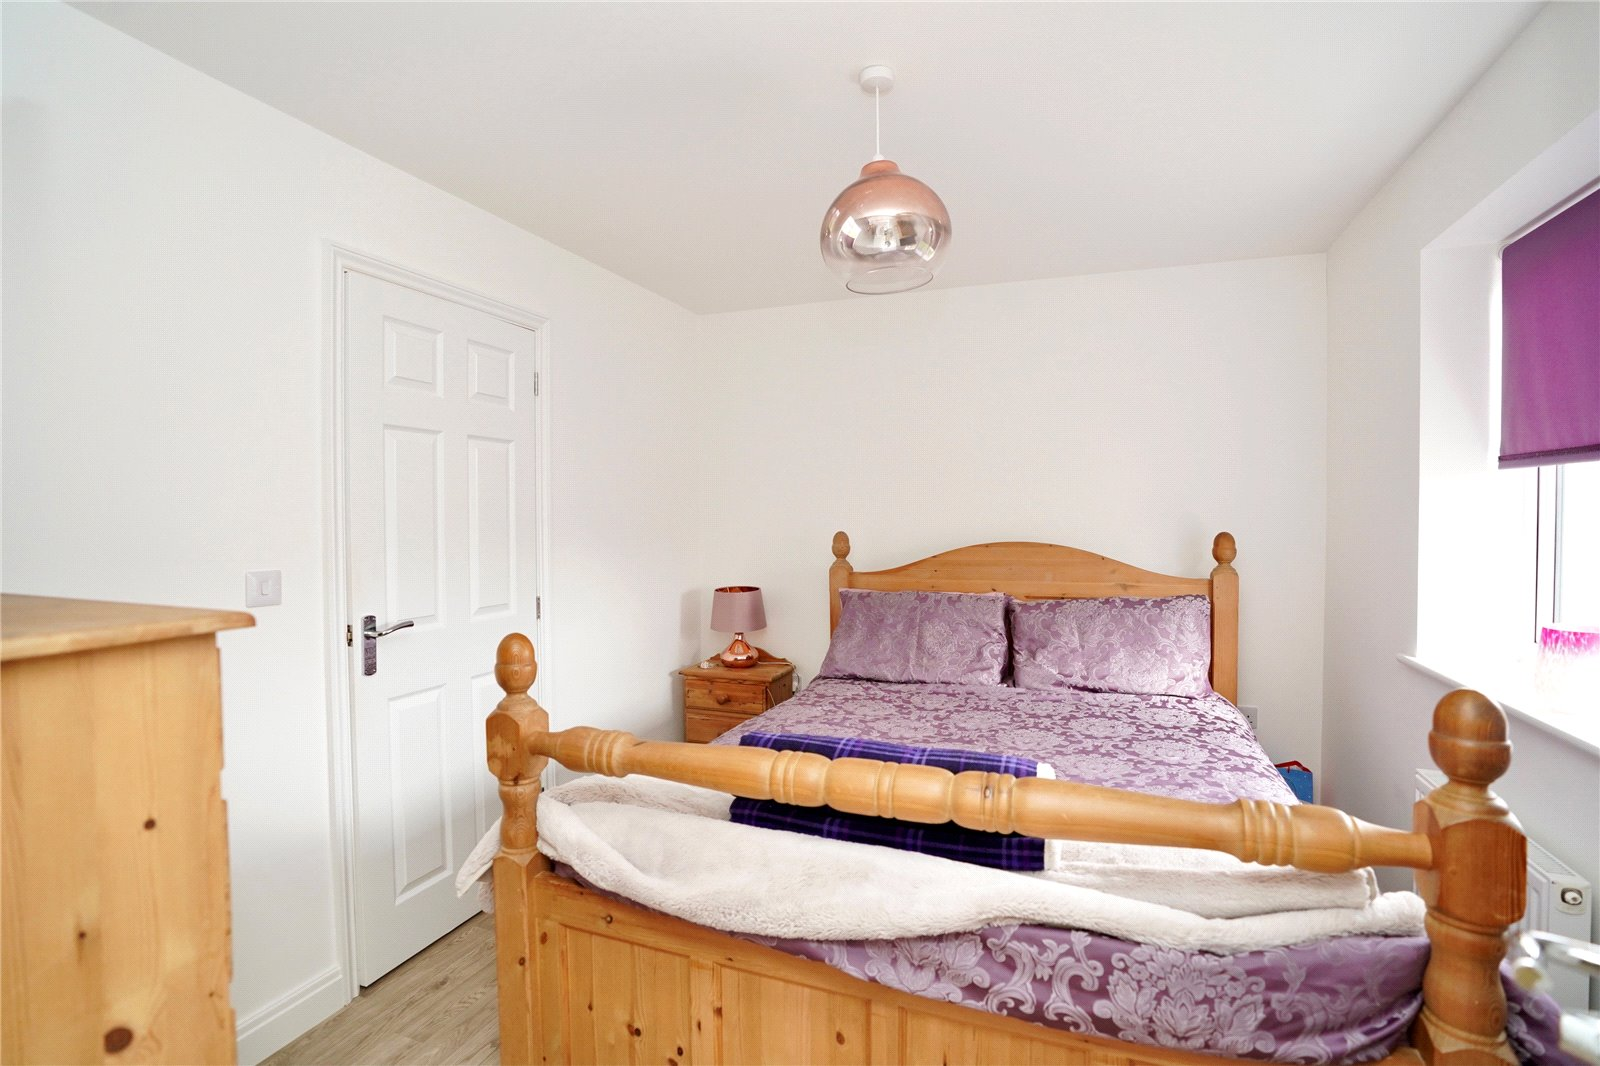 3 bed house for sale in Sawtry, PE28 5ZJ 6